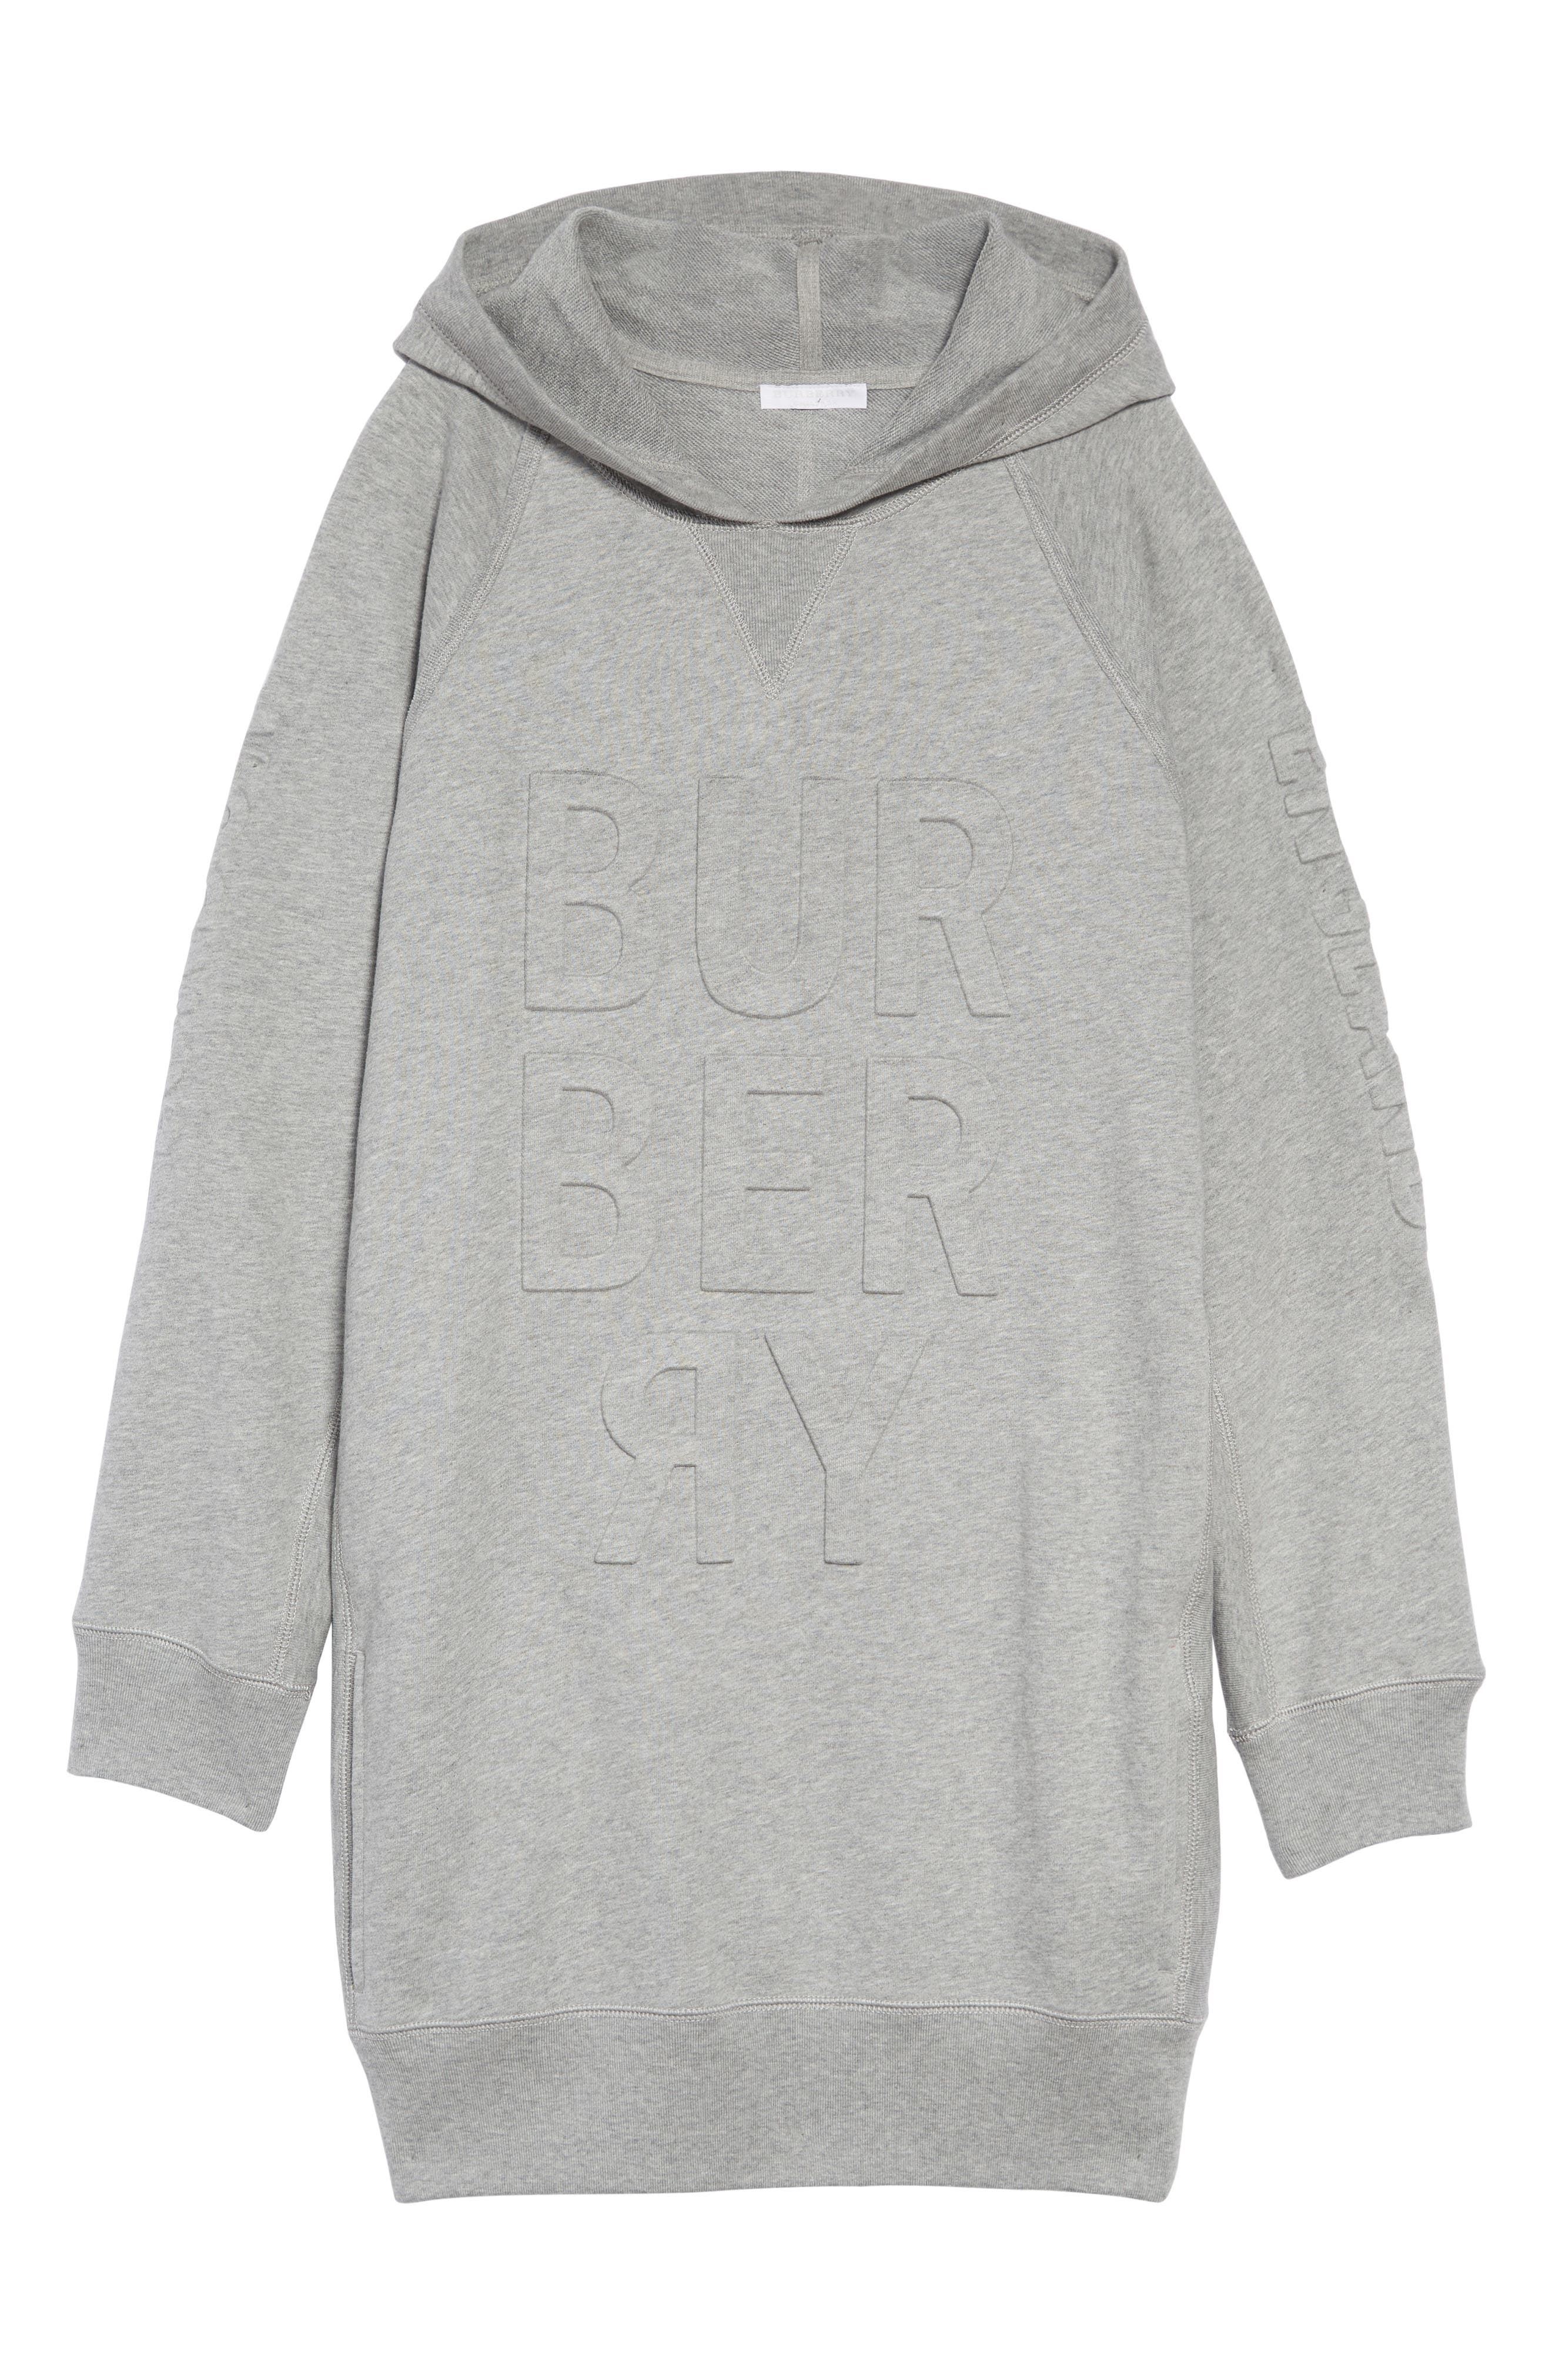 Aurora Logo Sweatshirt Dress,                             Main thumbnail 1, color,                             GREY MELANGE